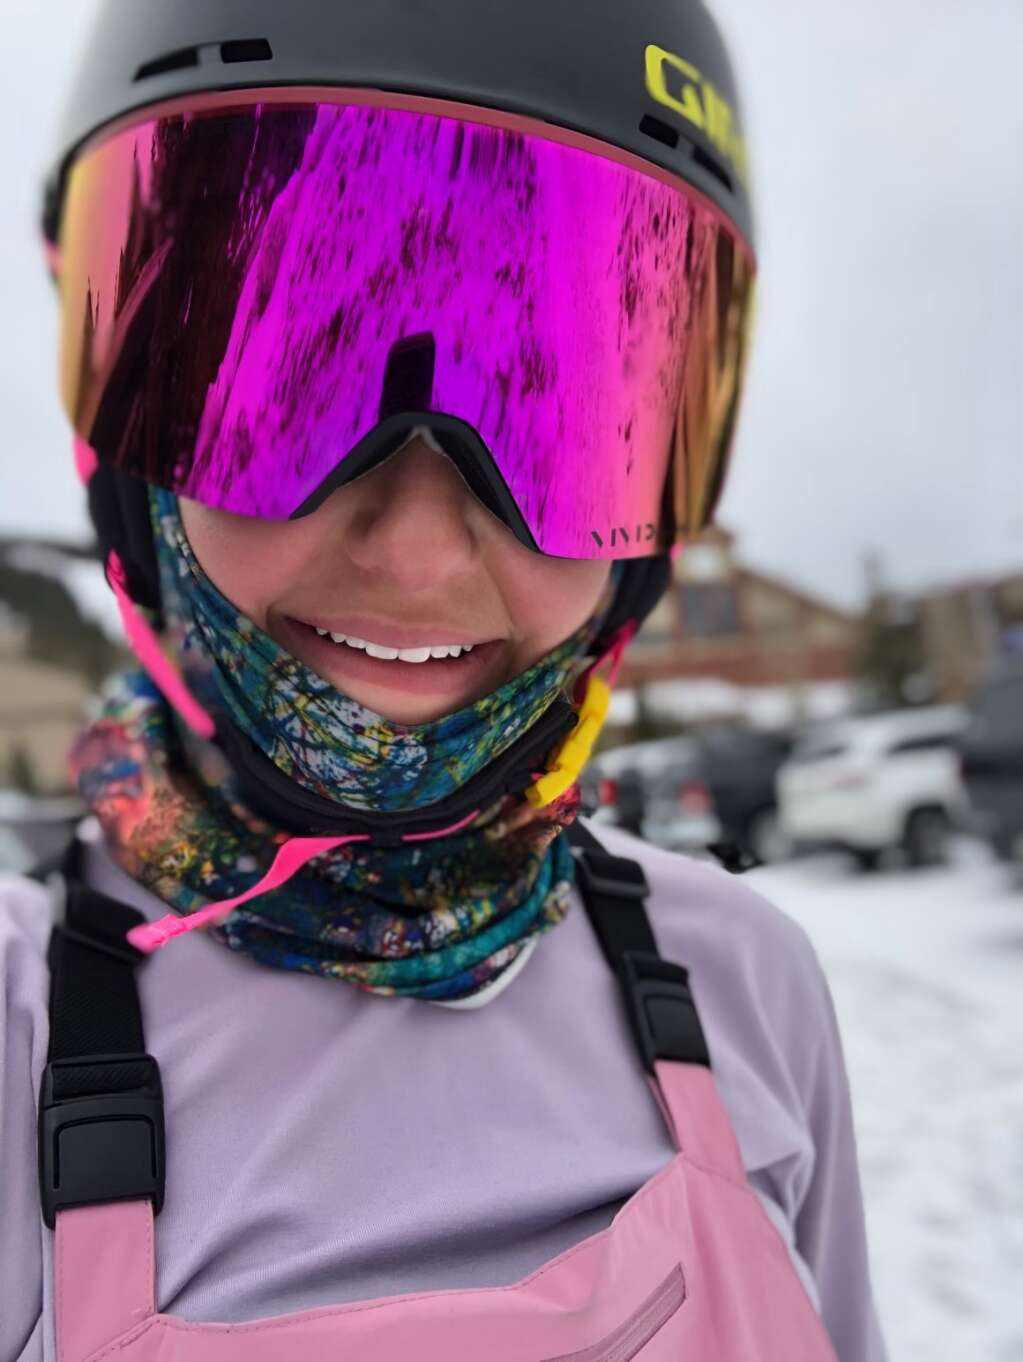 Team Summit freeskier Alex Thisted has qualifed to compete on this winter's Rev Tour. | Photo from Teddy Goggin